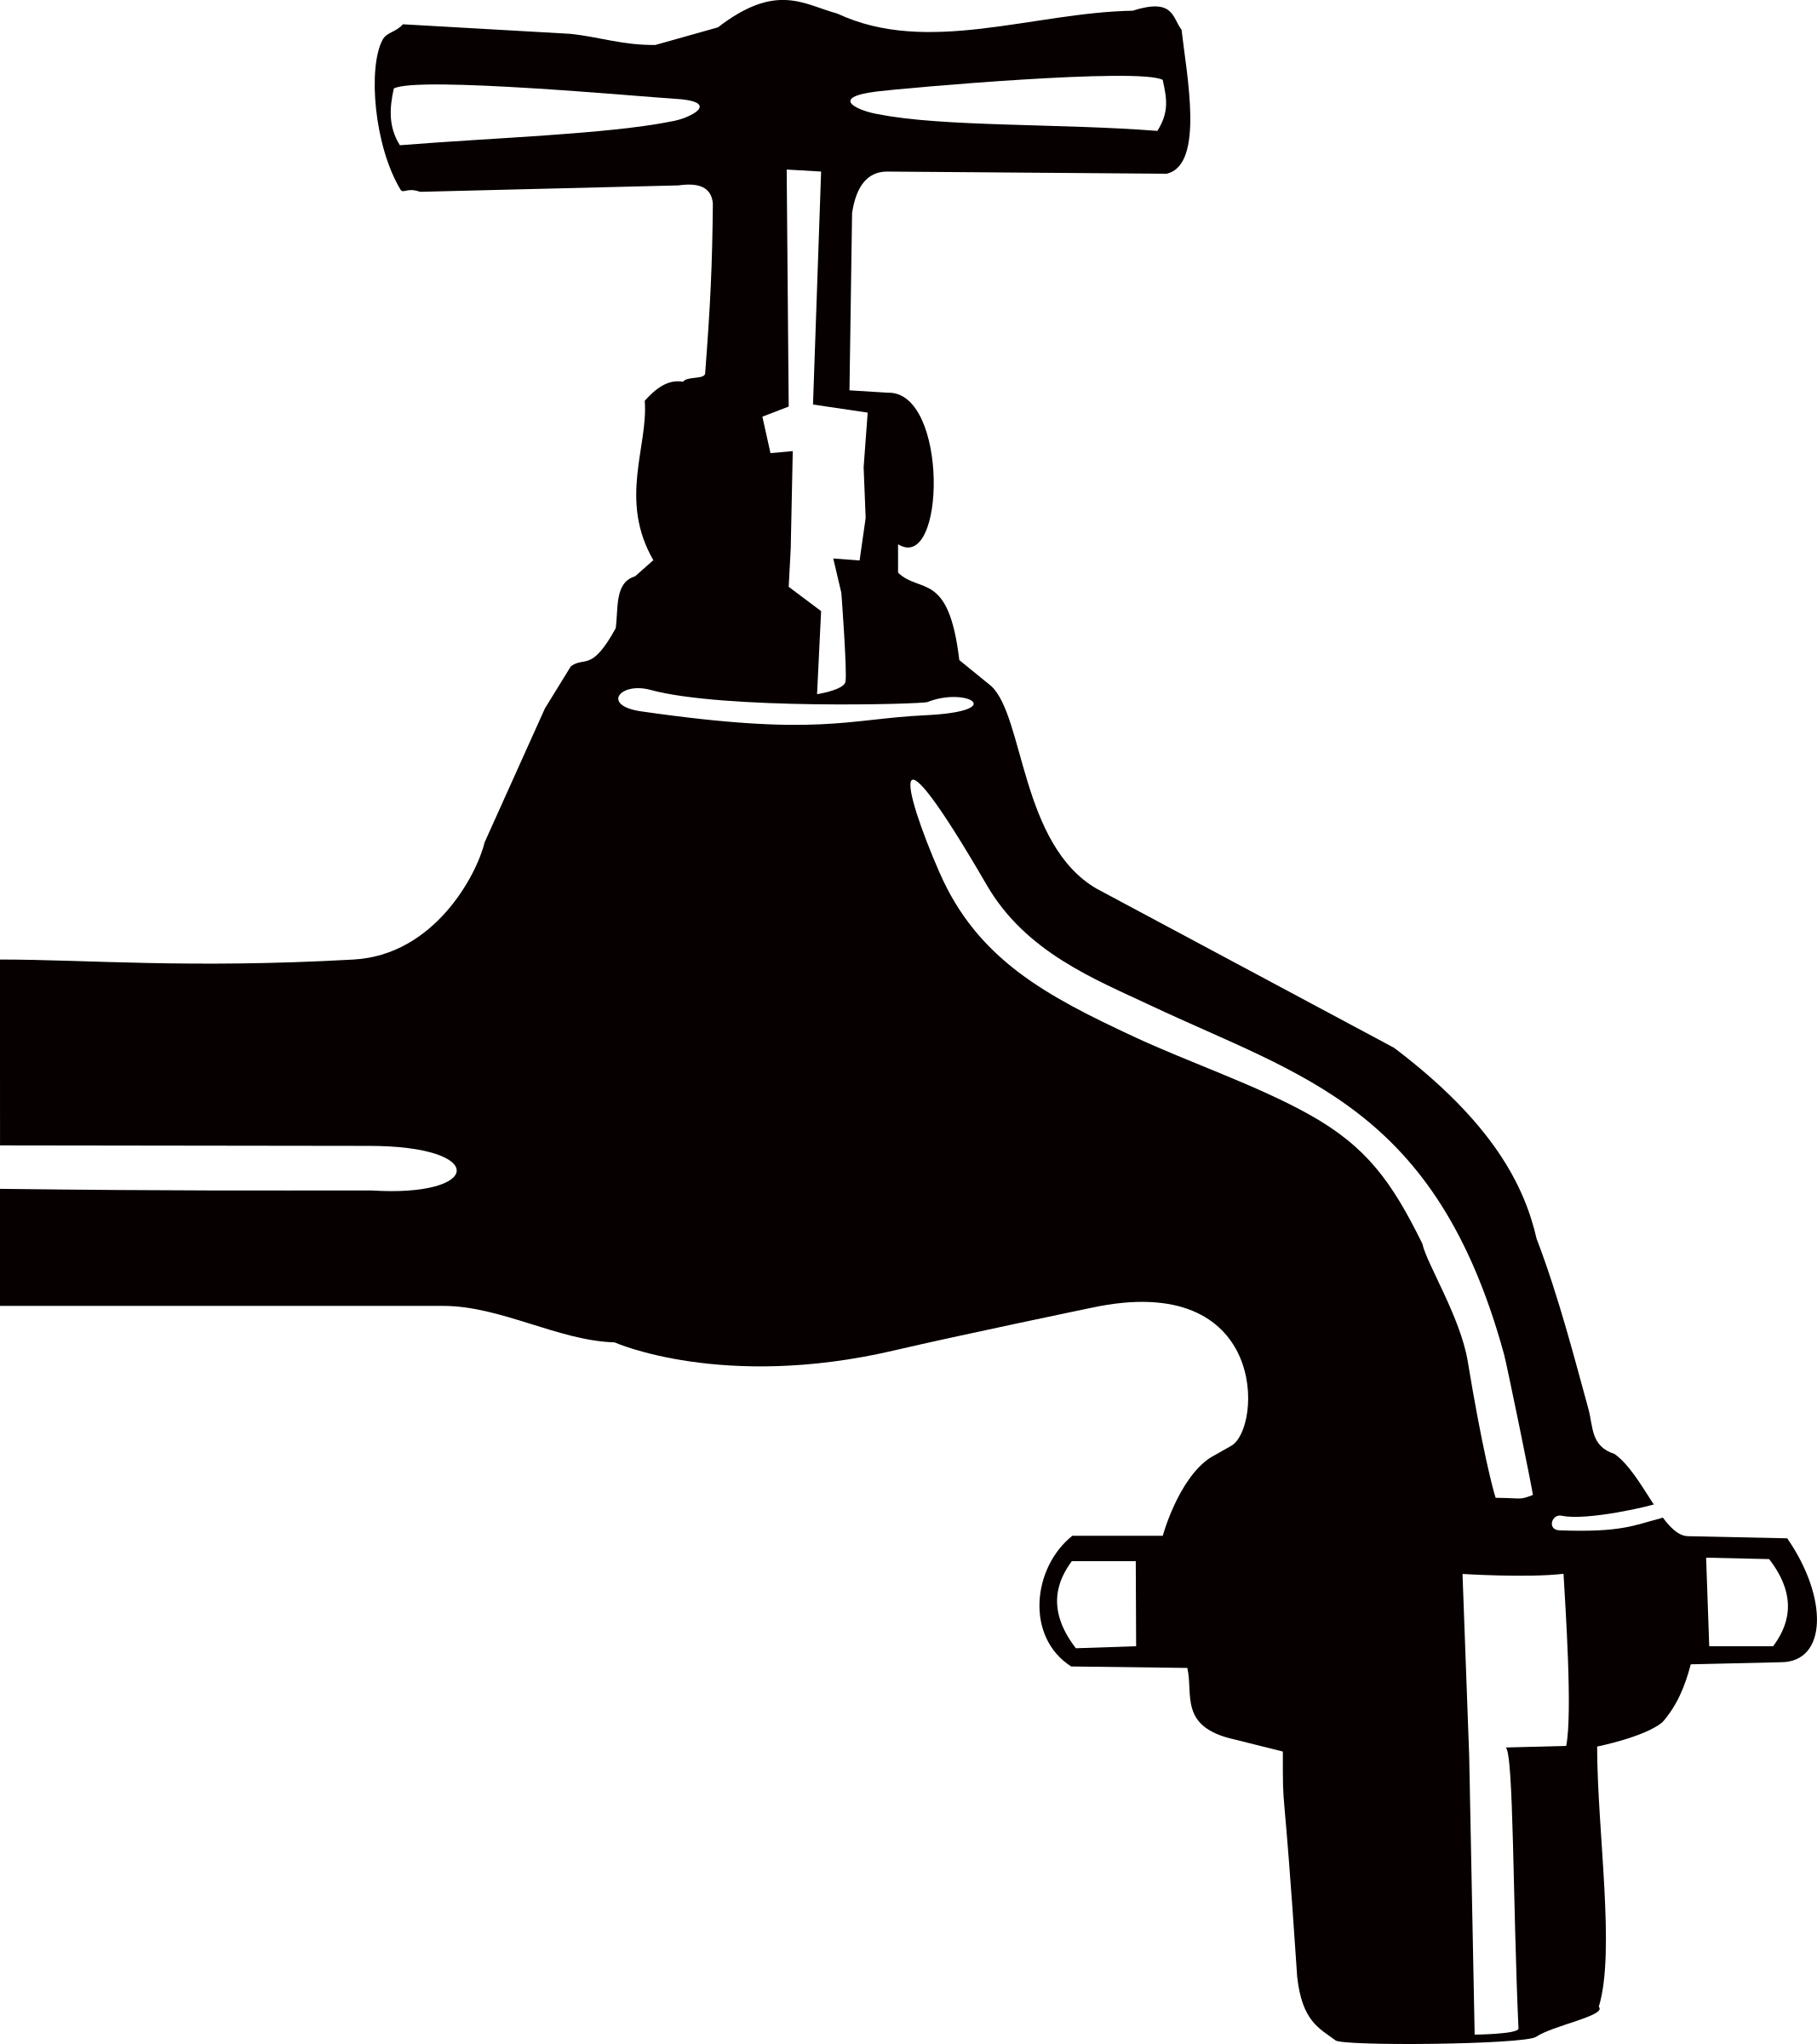 image free Faucet clipart black and white. Big image png